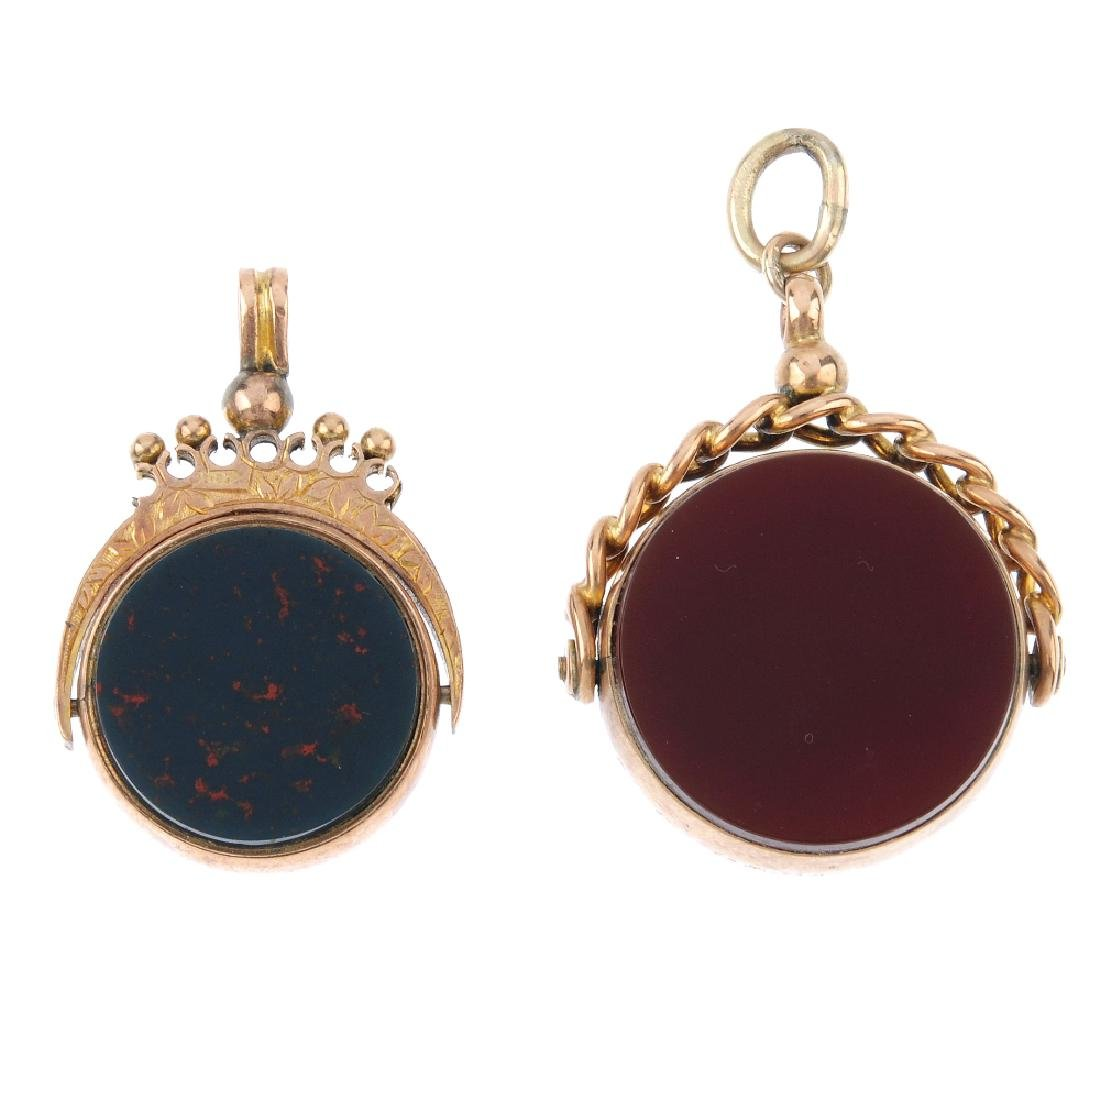 Two 9ct gold hardstone swivel fobs. To include a late